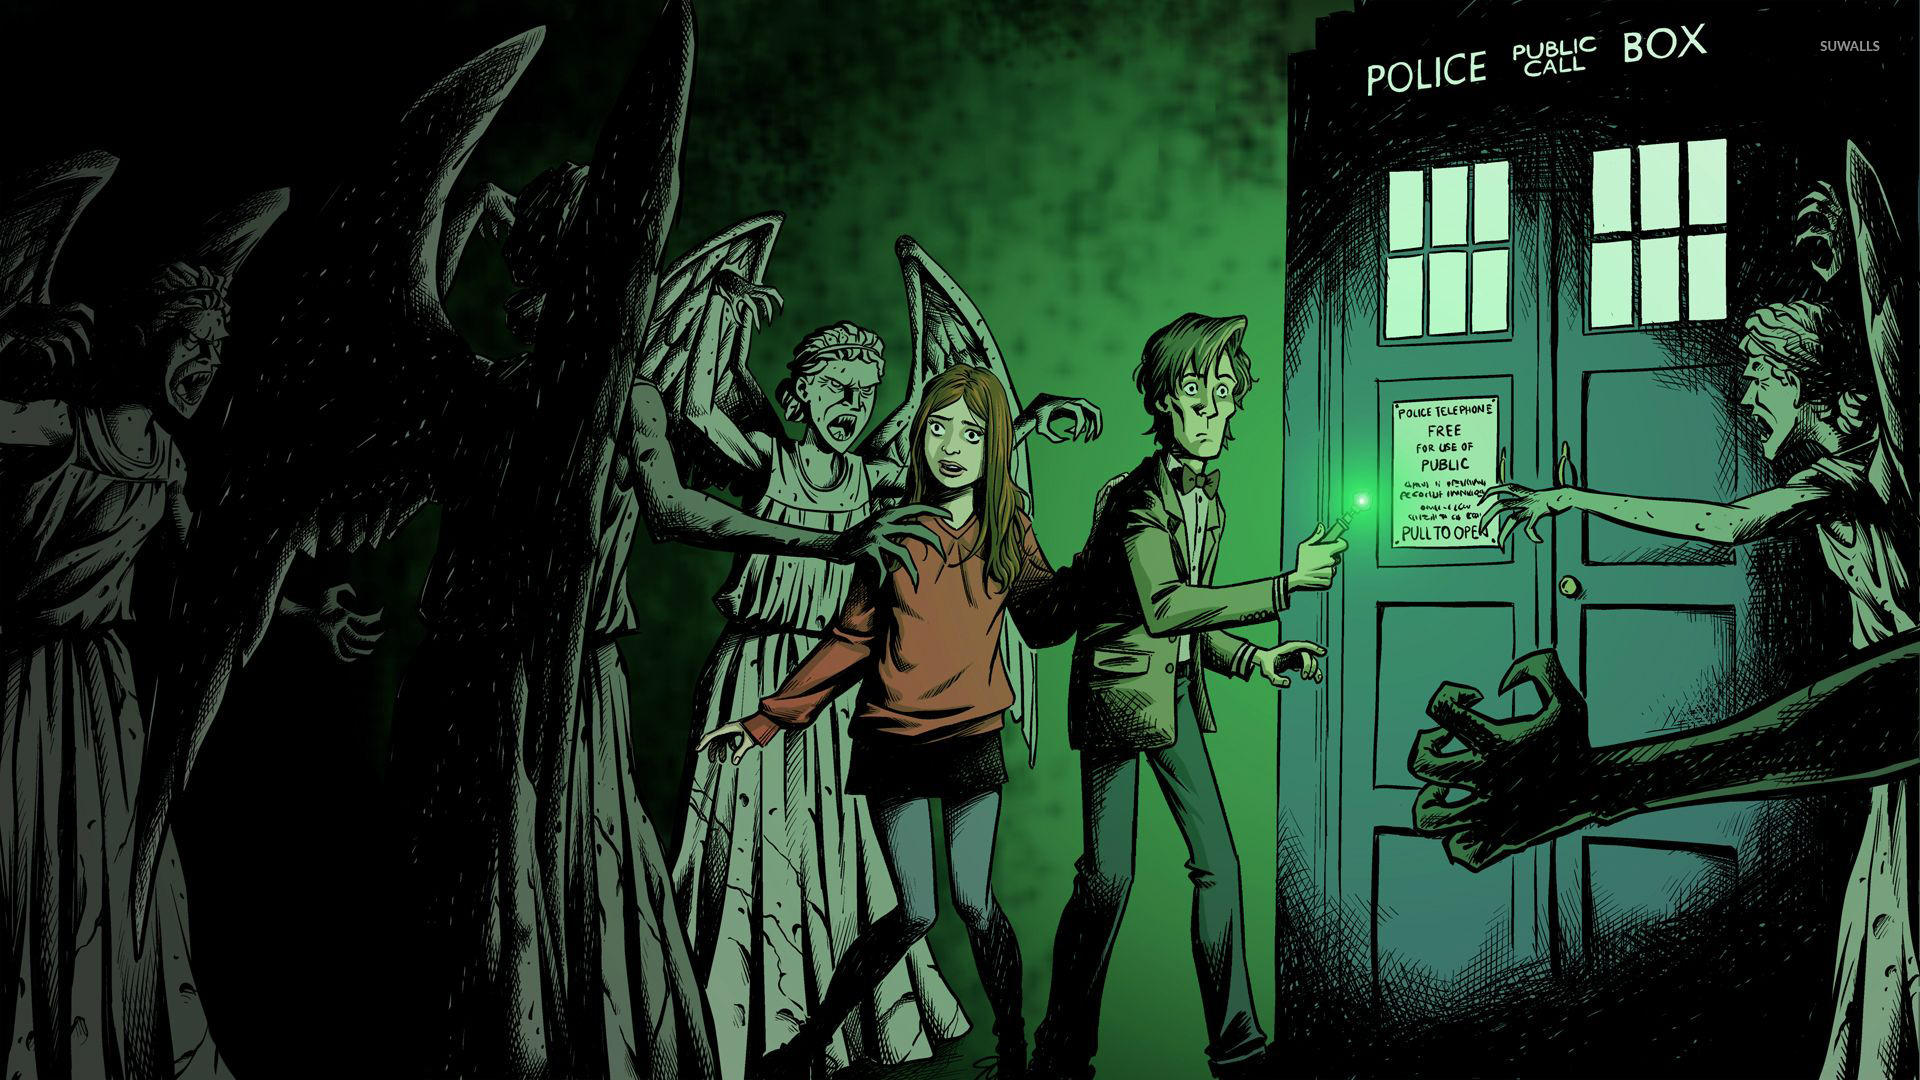 Doctor Who 4 Wallpaper Tv Show Wallpapers 16236